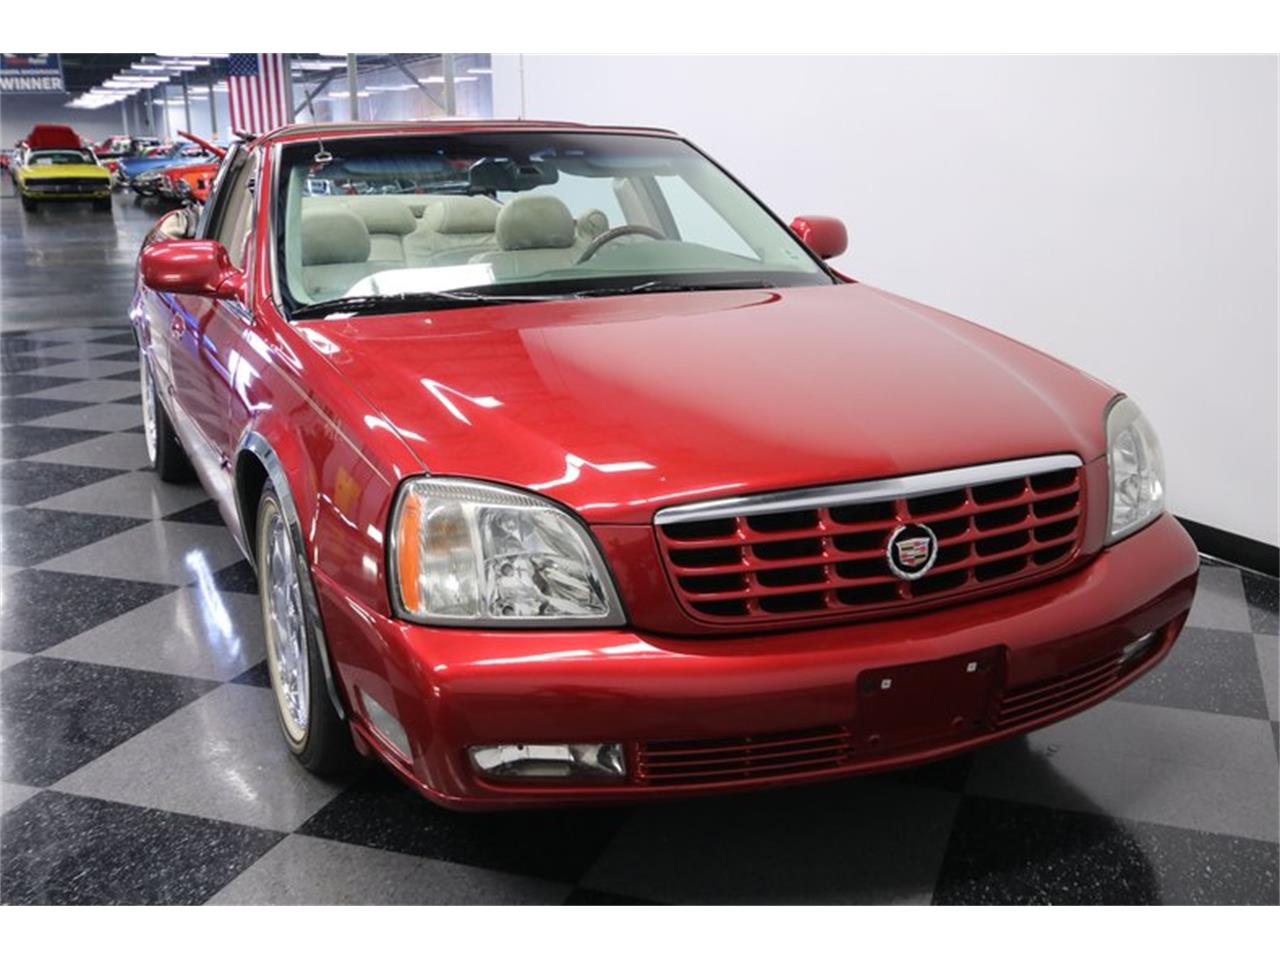 2004 cadillac deville for sale classiccars com cc 1303712 2004 cadillac deville for sale